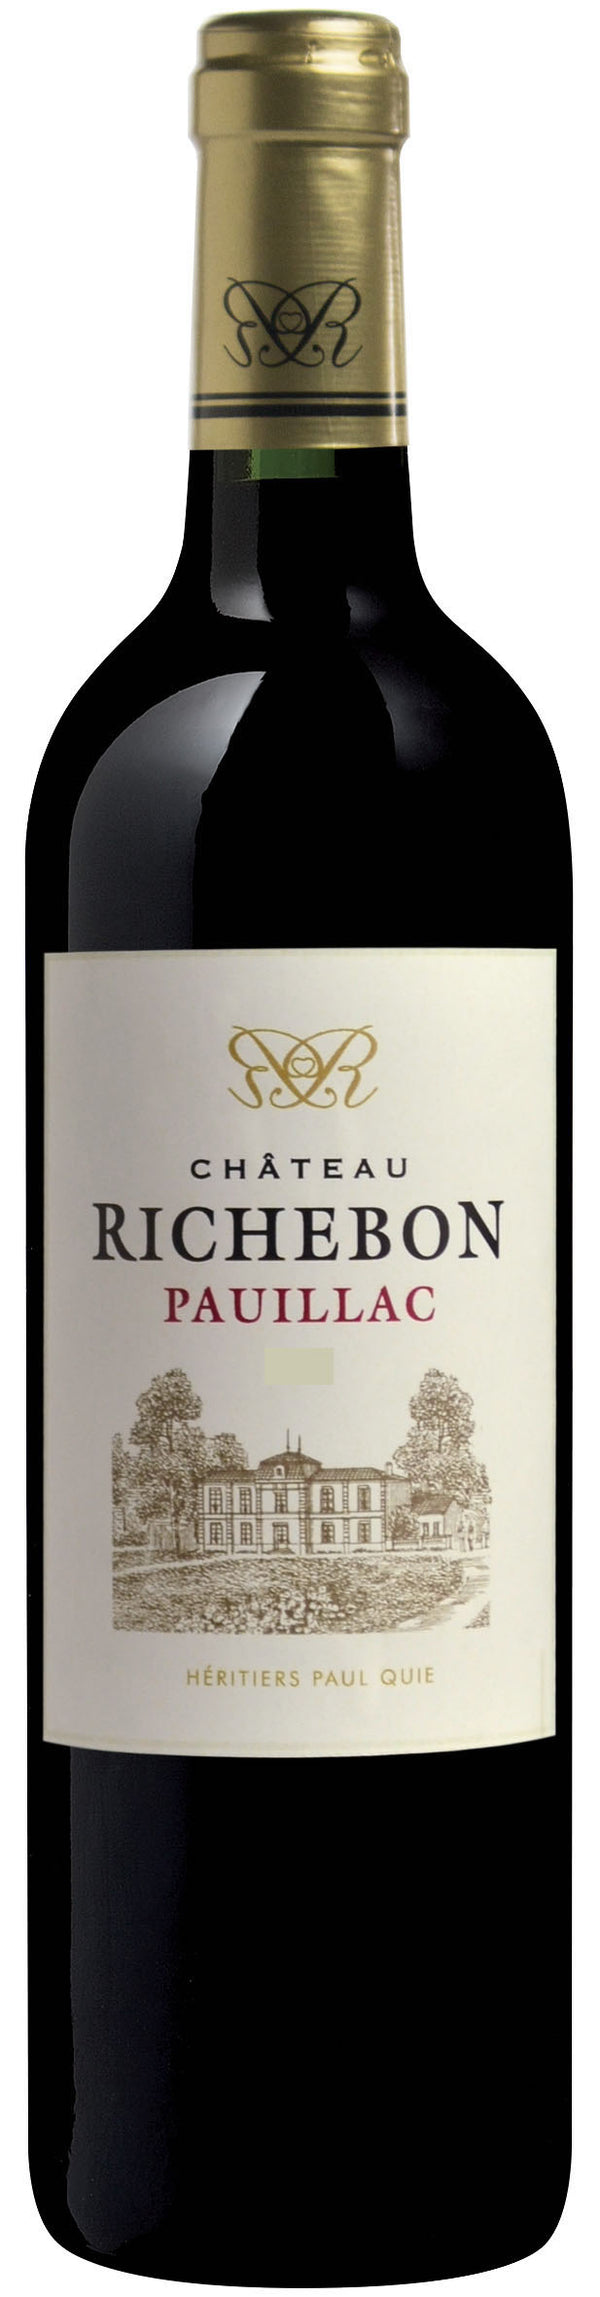 Chateau Richebon Pauillac 2015 750ml